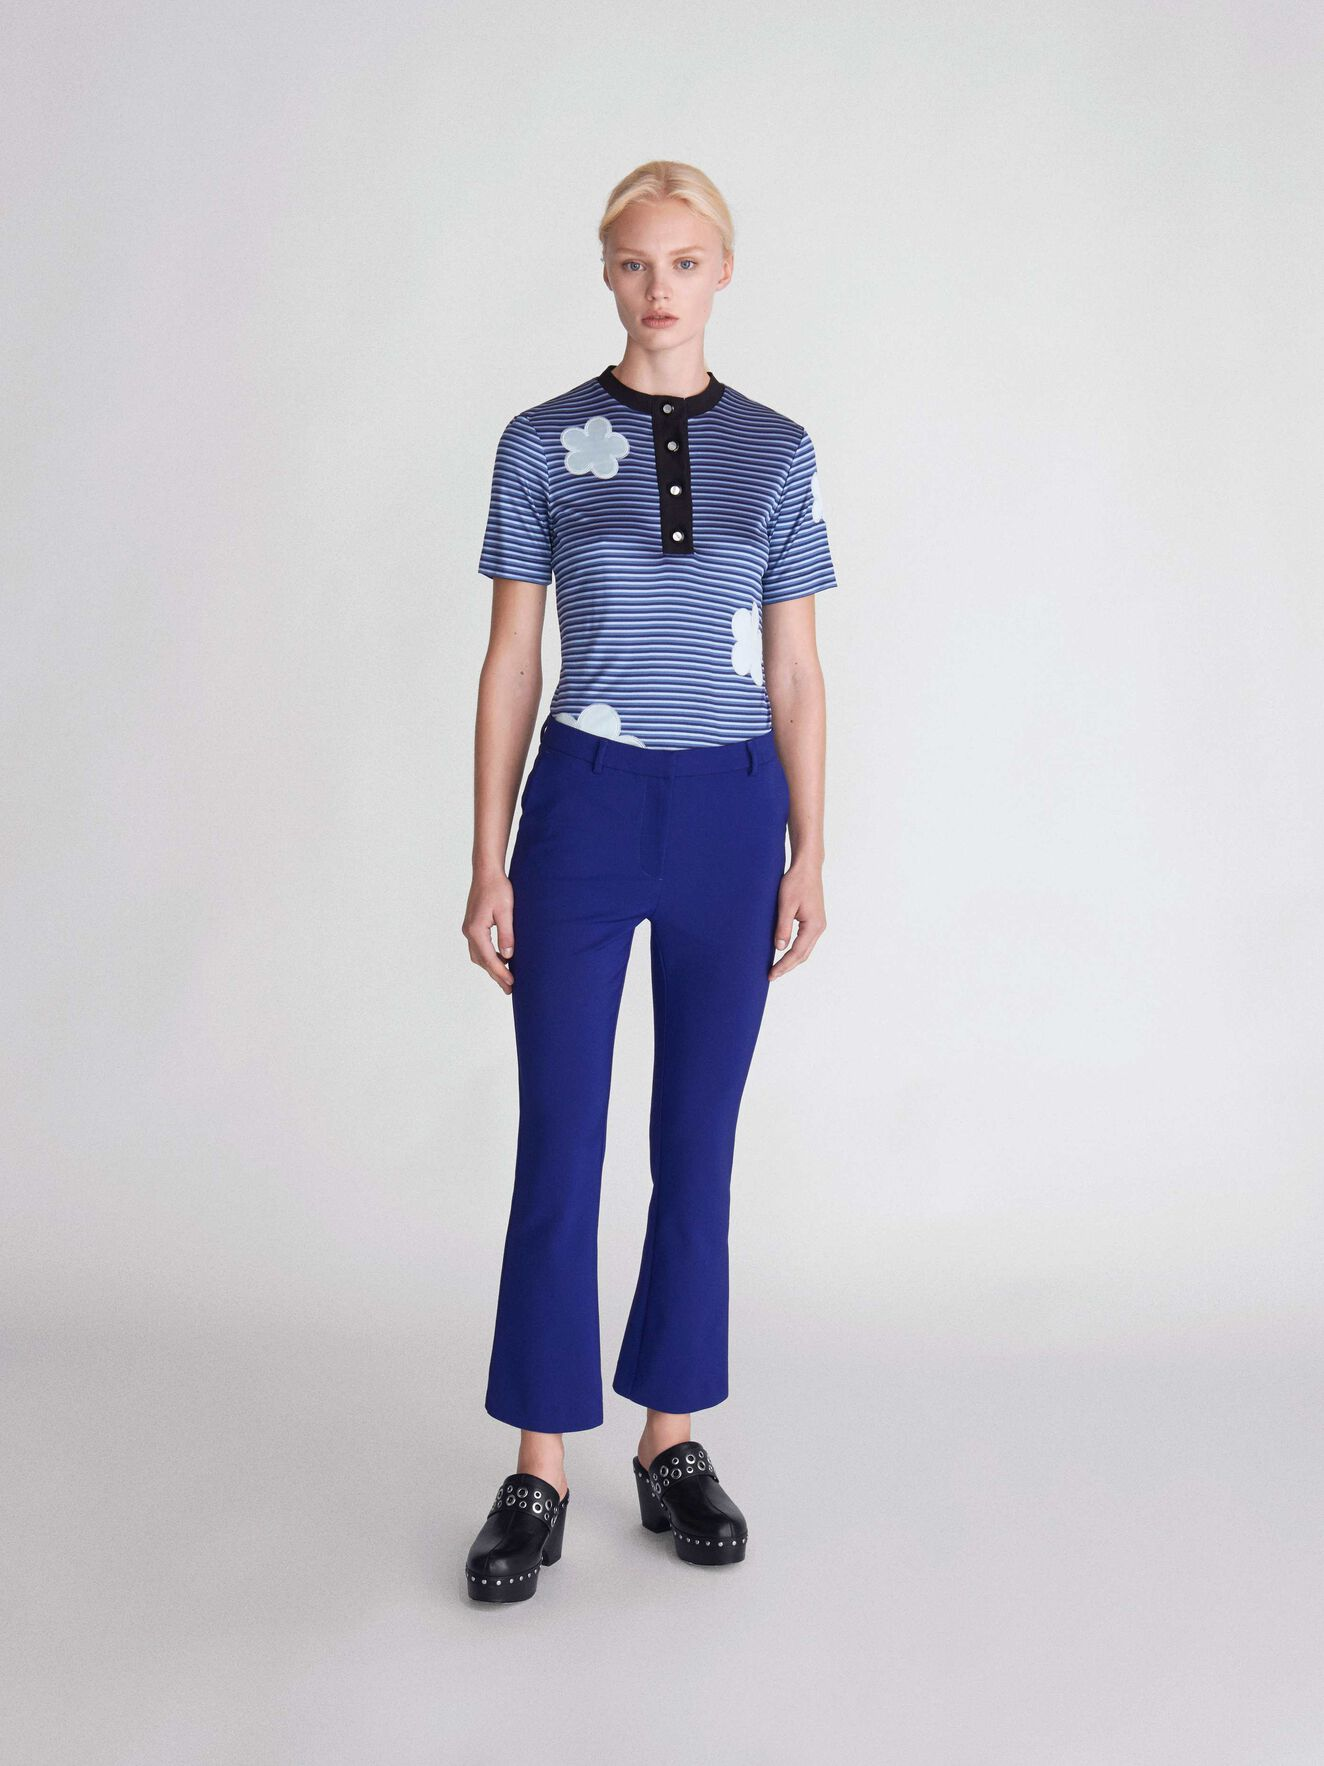 Noora 2 Trousers in Deep Ocean Blue from Tiger of Sweden